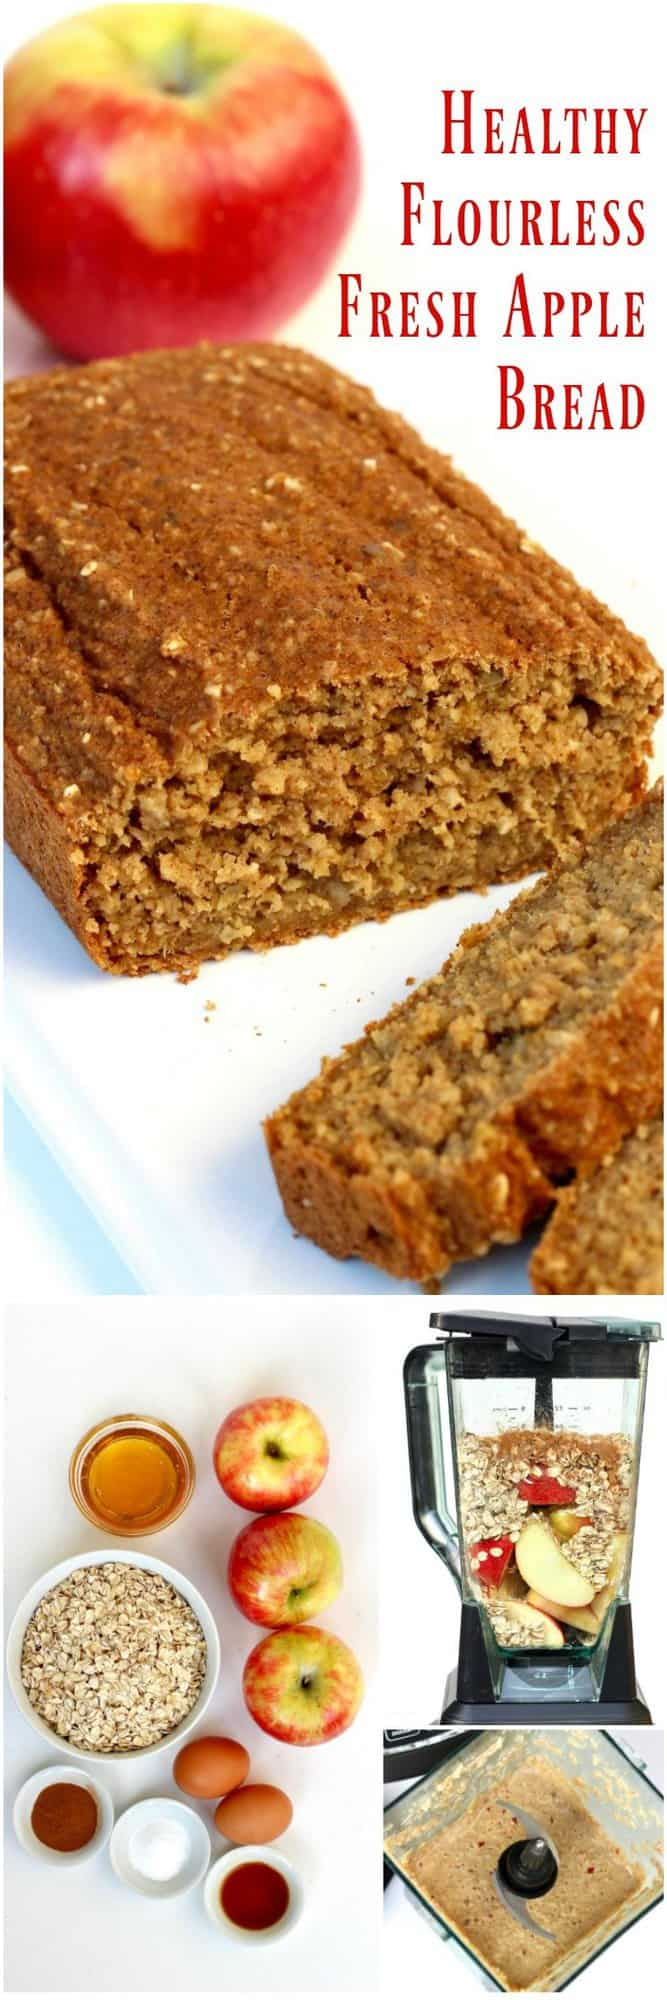 Healthy Flourless Fresh Apple Bread